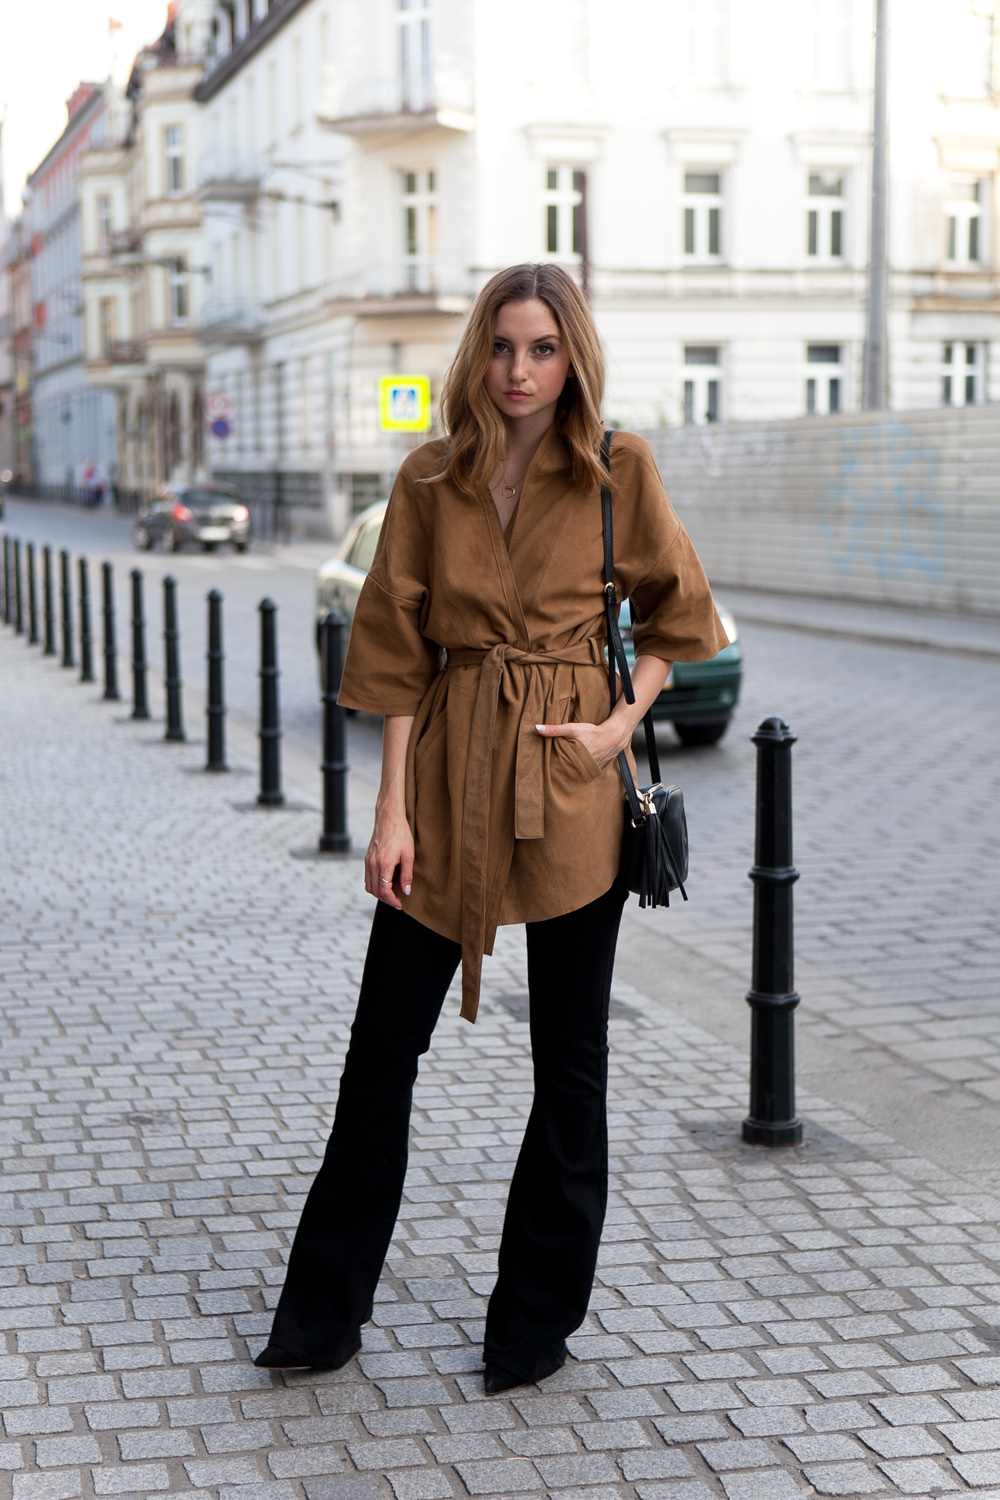 SUEDE AND FLARES